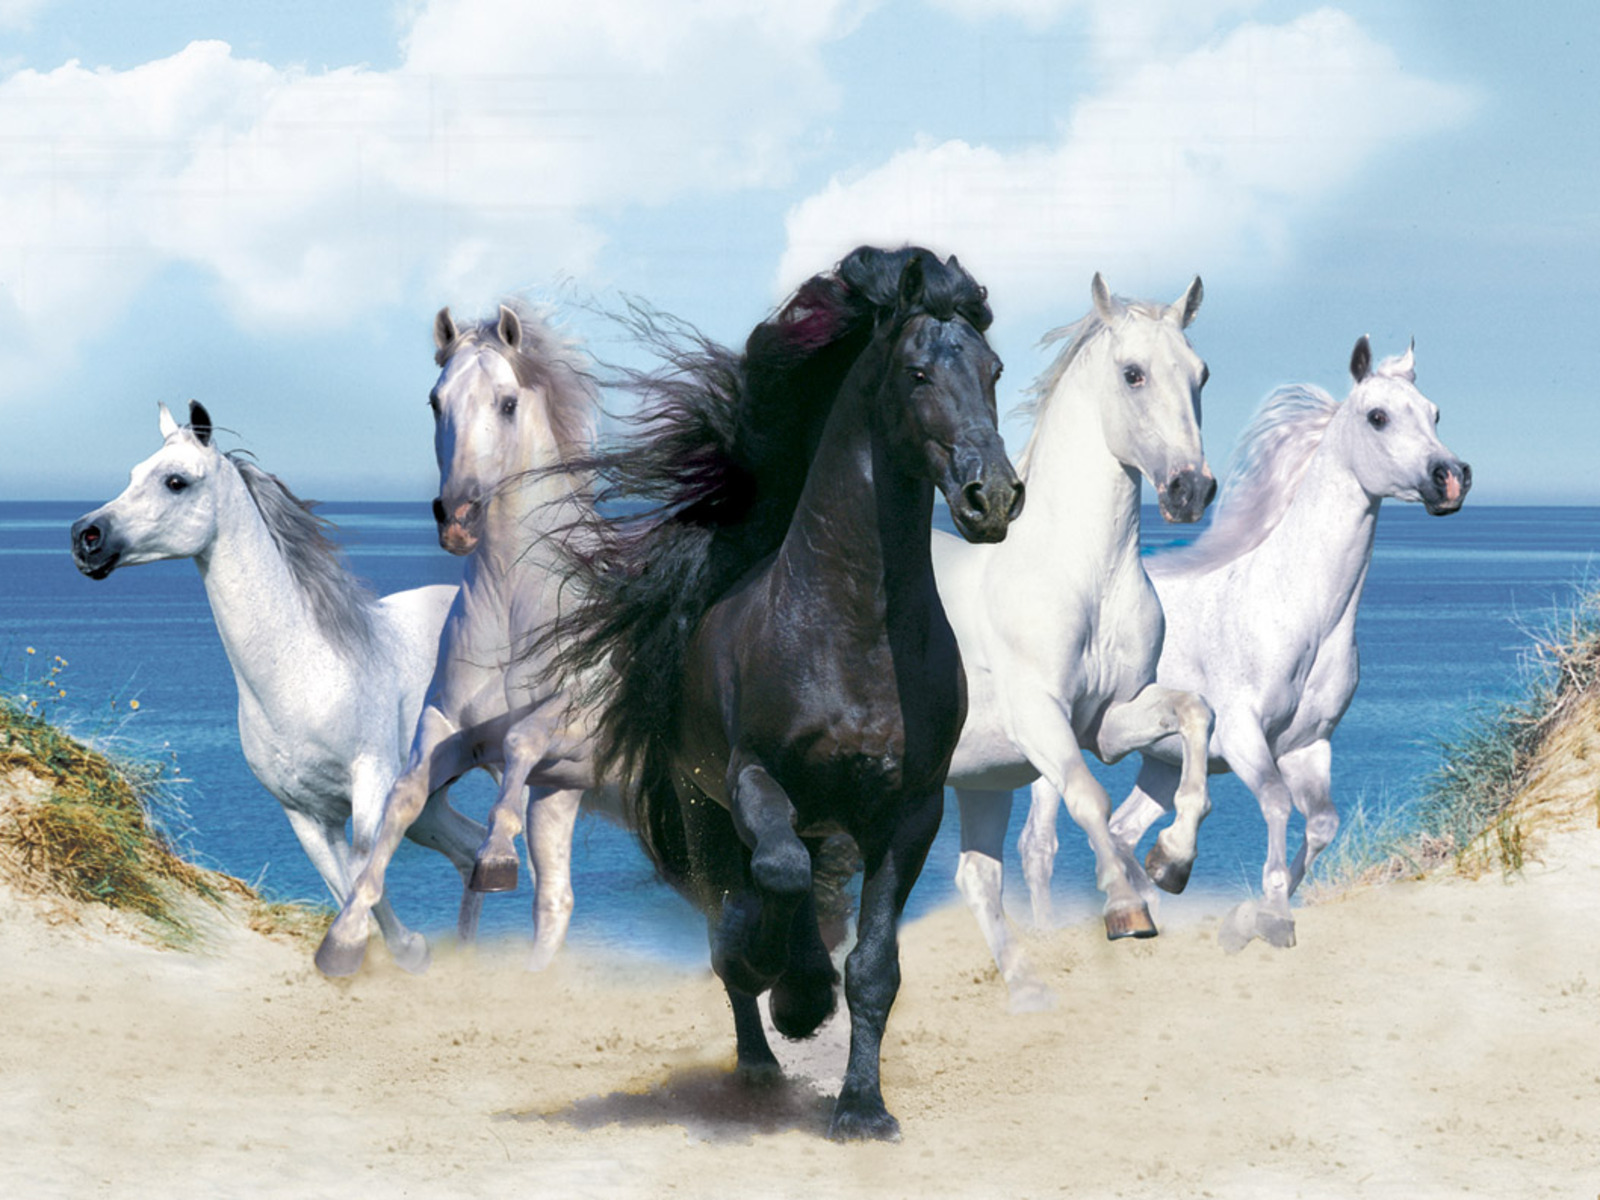 Beautiful Horse Wallpaper | BsnSCB Gallery